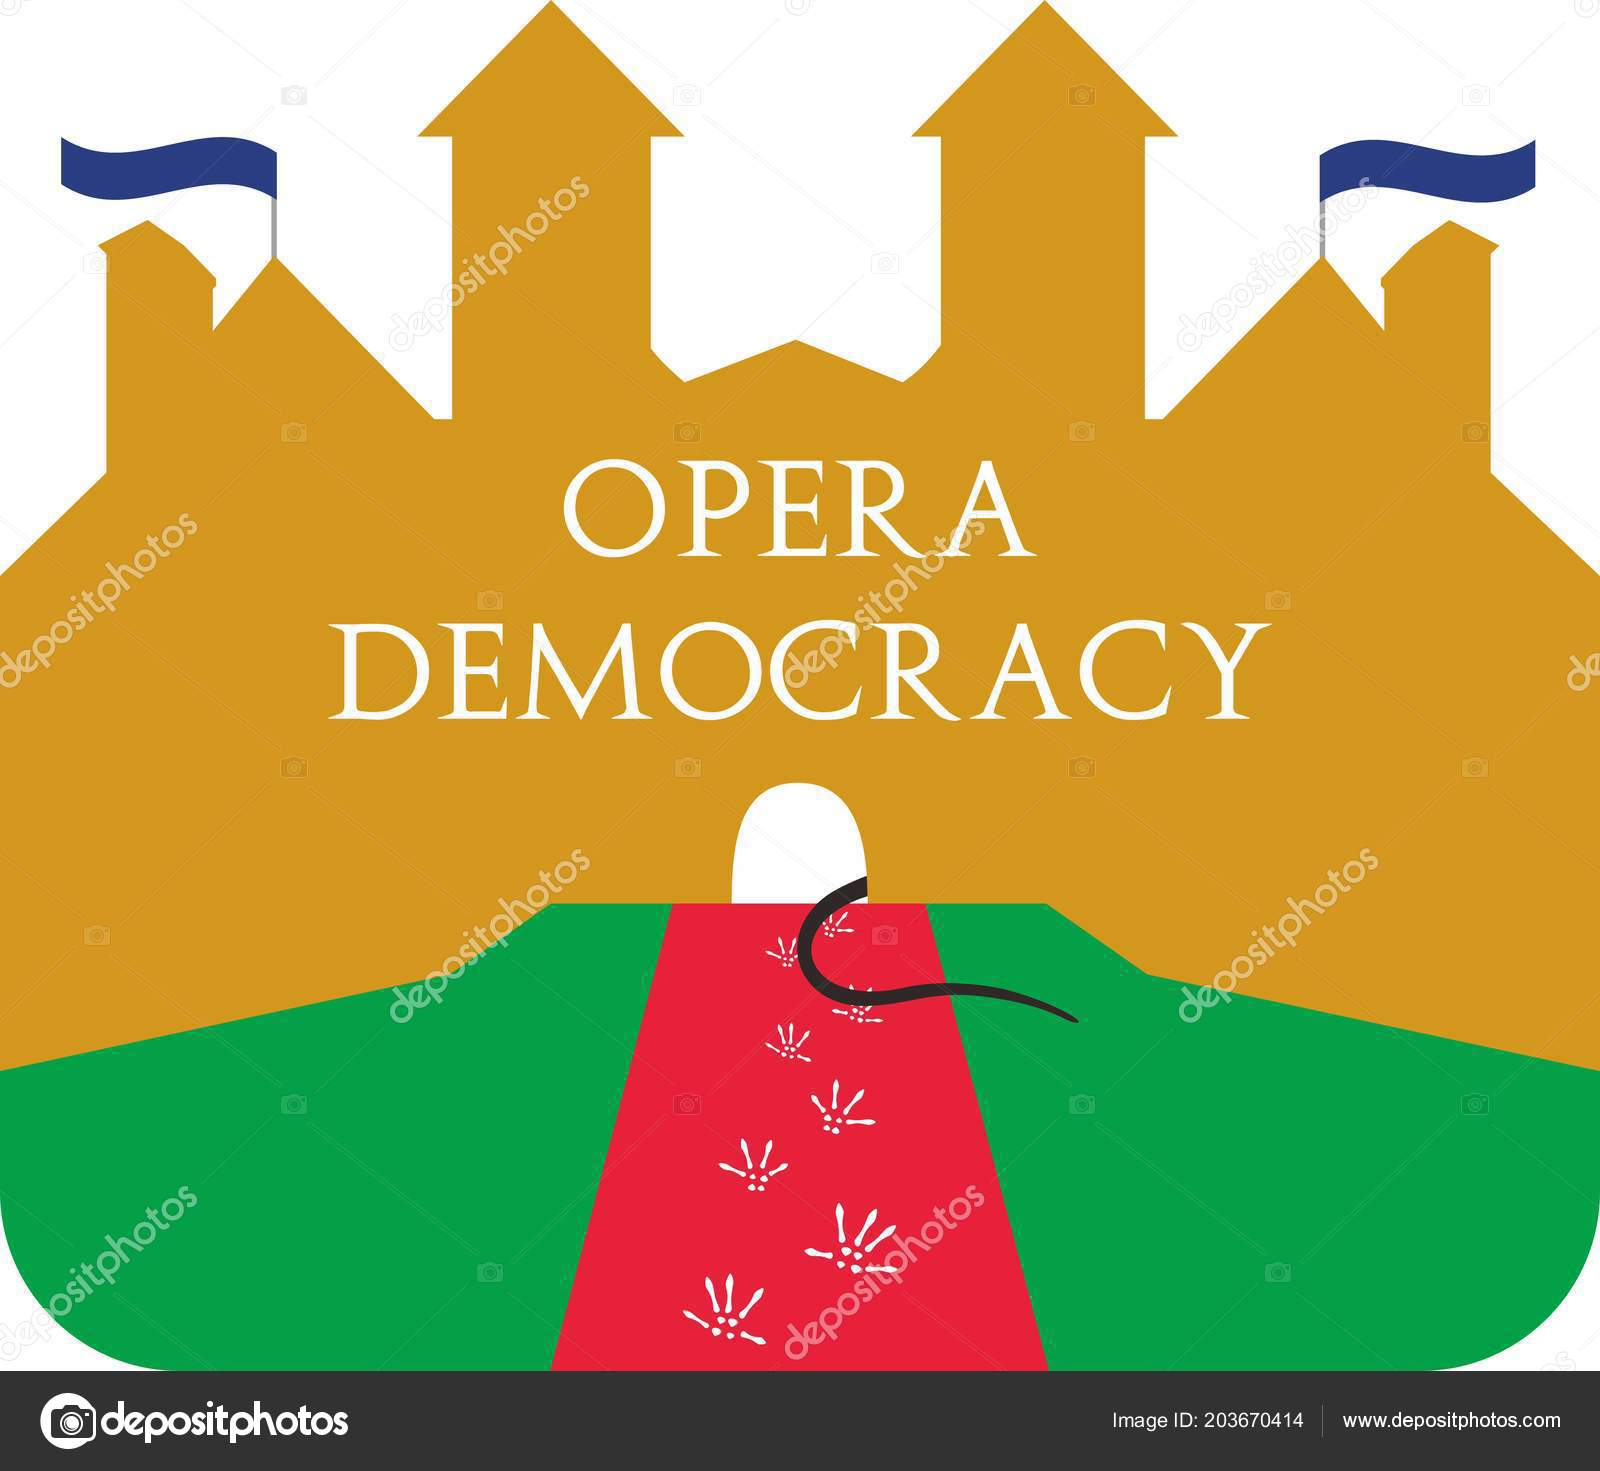 House Opera Satire Illustration Vector Politic Political View